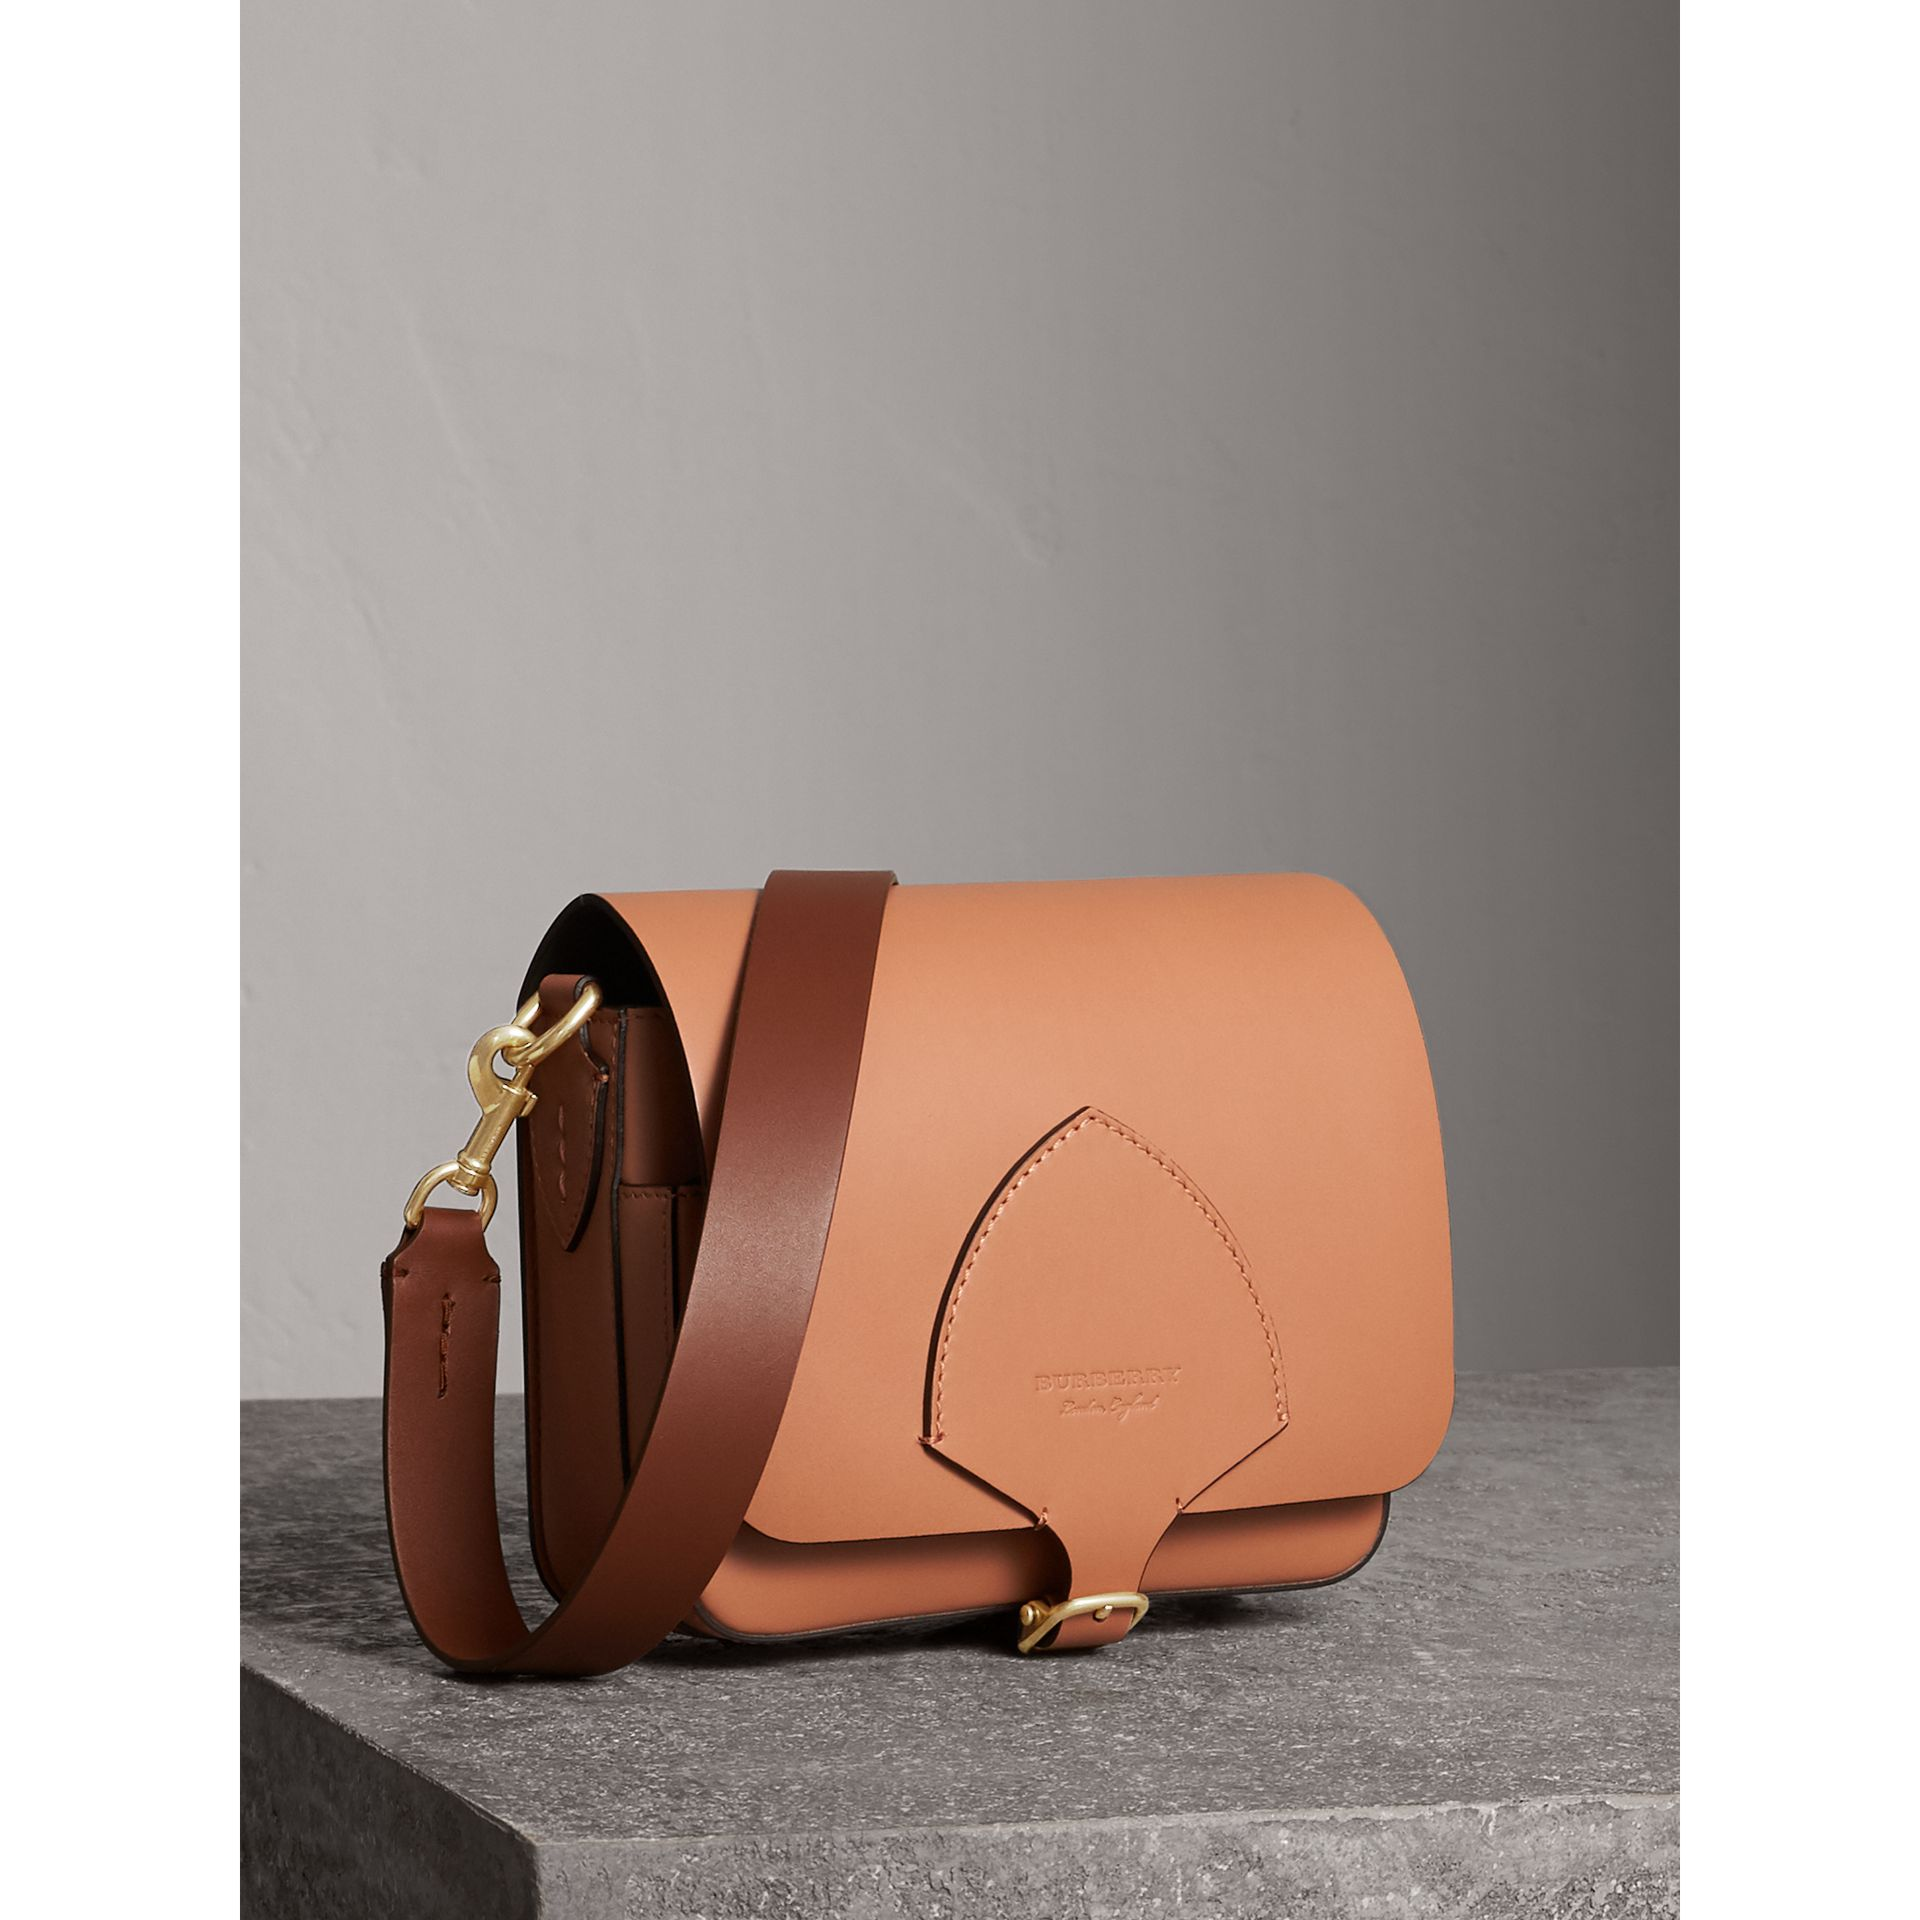 Sac The Satchel carré en cuir (Camel) - Femme | Burberry - photo de la galerie 7